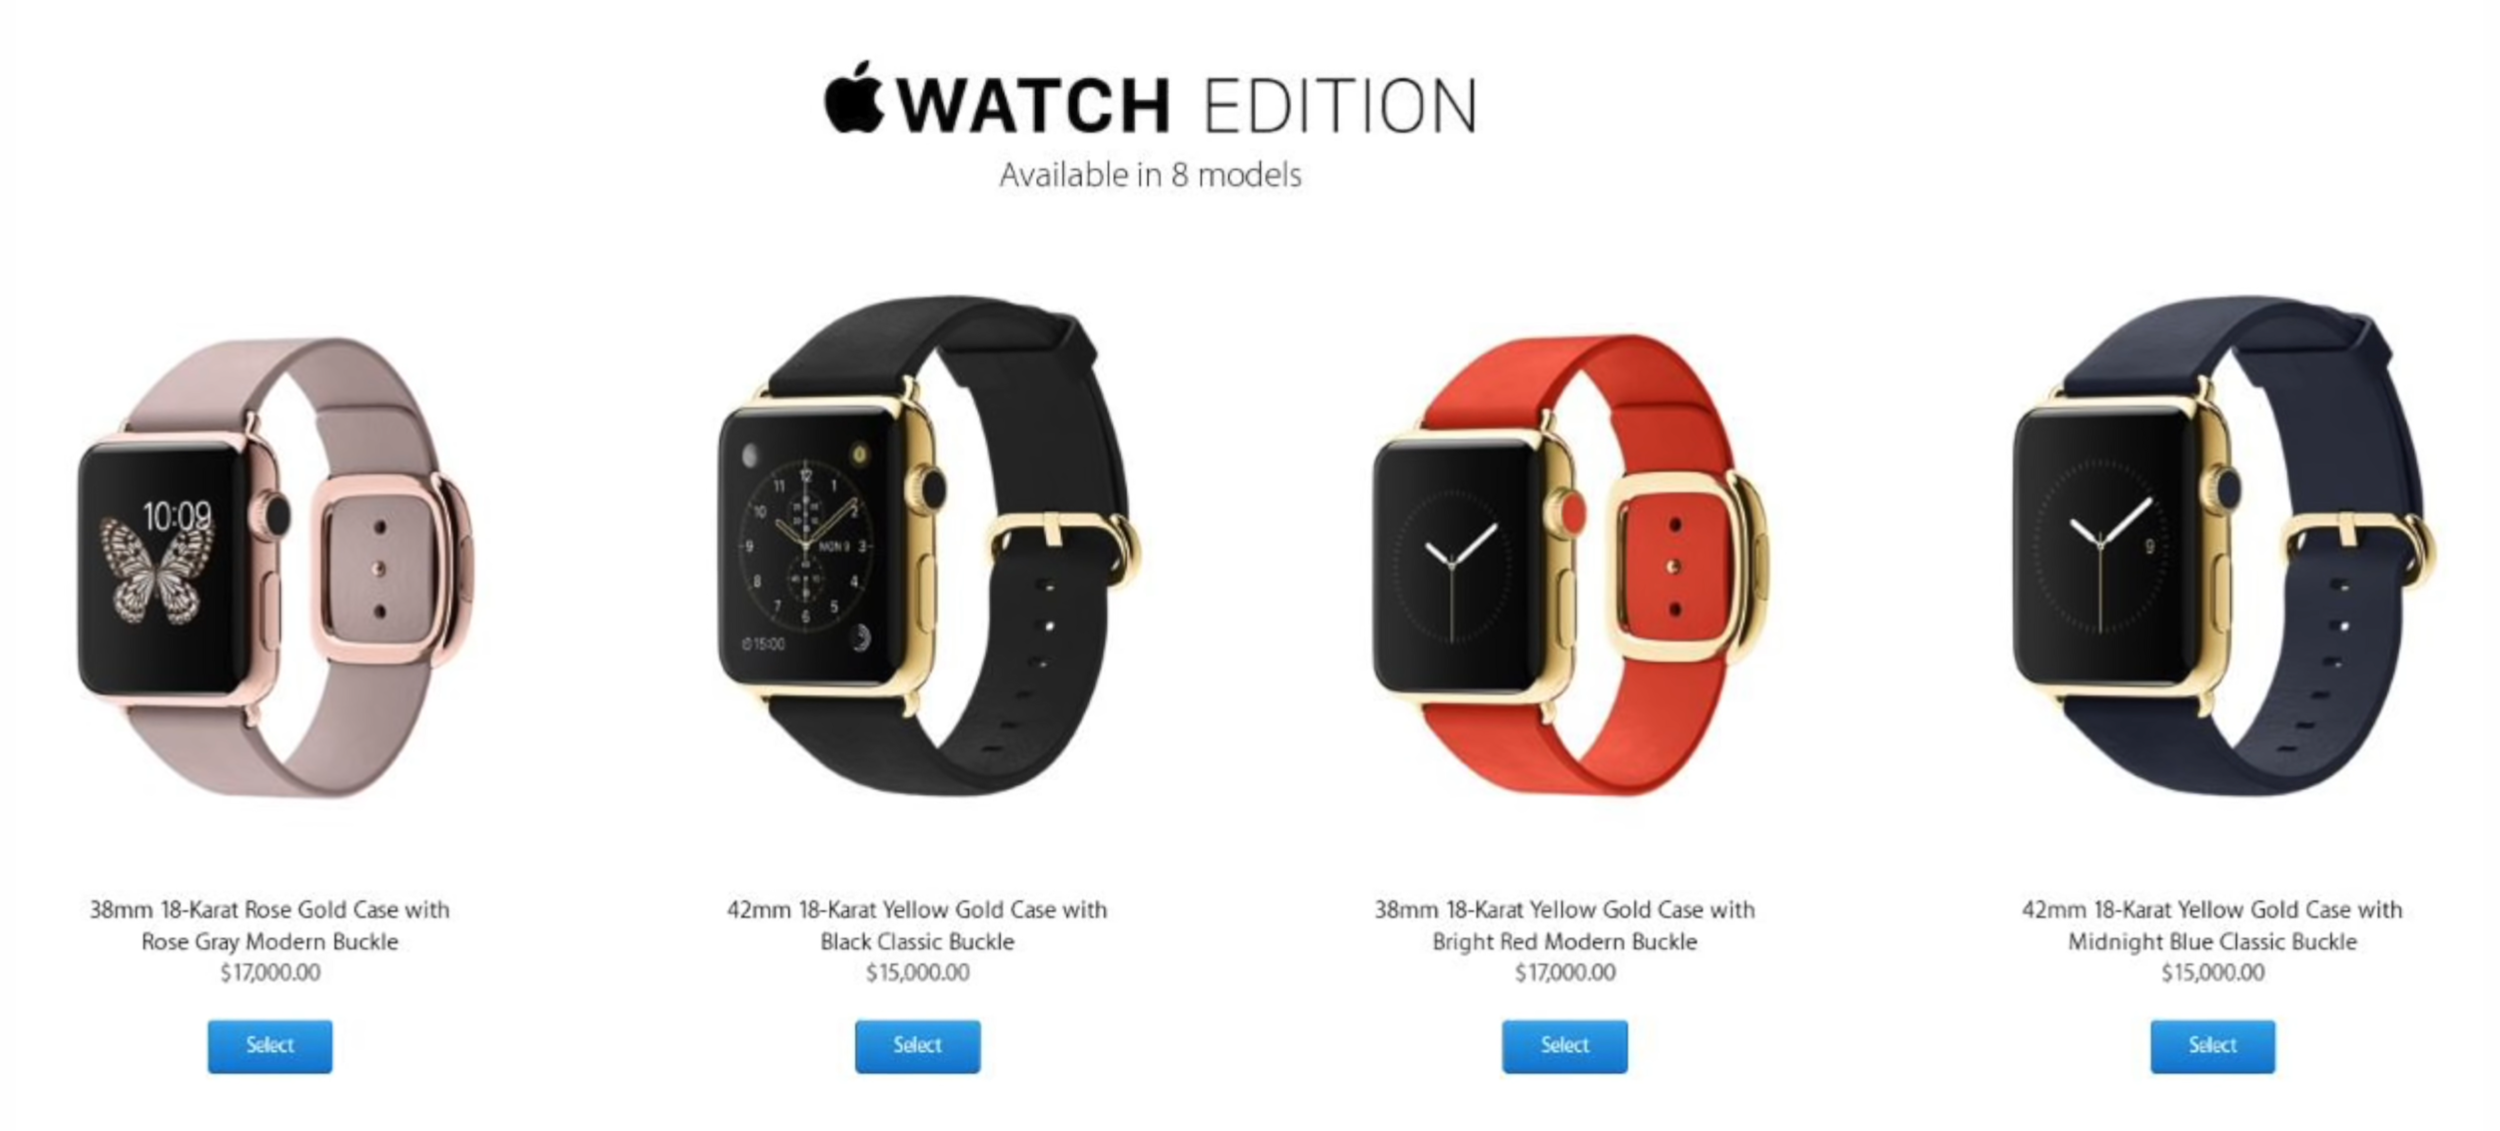 The luxury Apple Watch Edition watches had previously been discontinued due to a lack of sales  (Source: Apple)